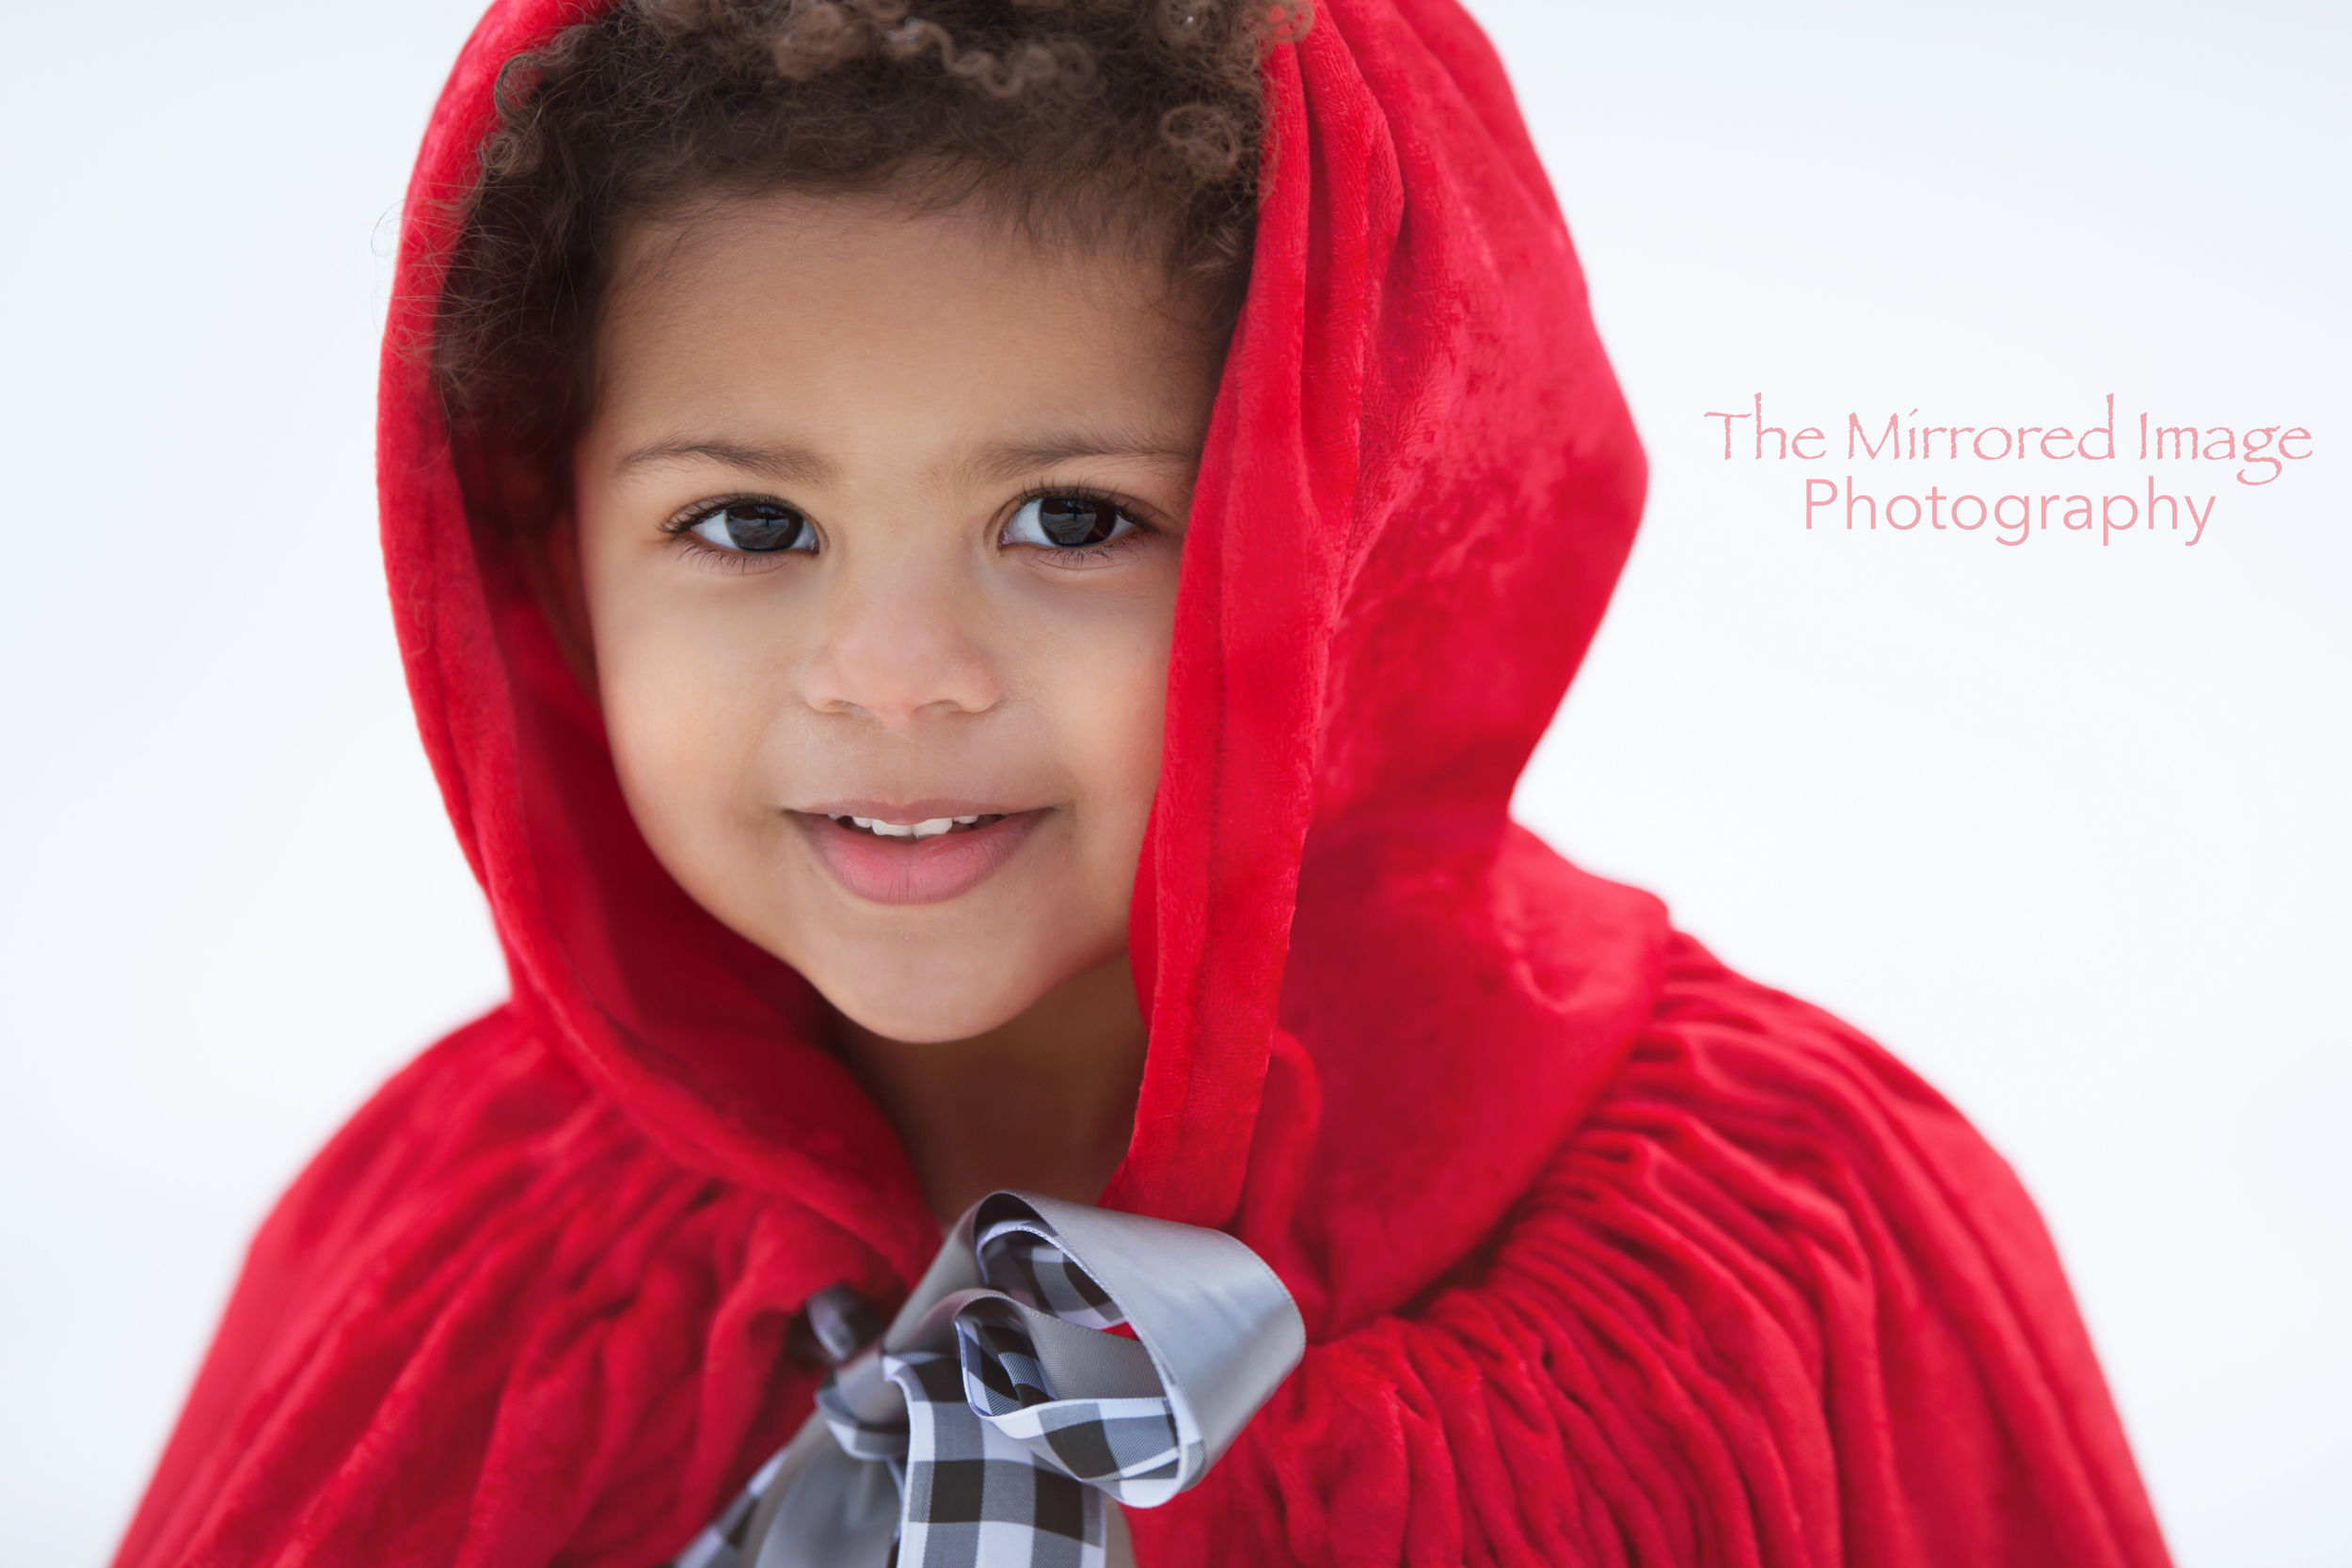 Children's Fine Art Photography, Kids Photos, Children's Portraits, Family Photos, Portraits, Portrait Photographers